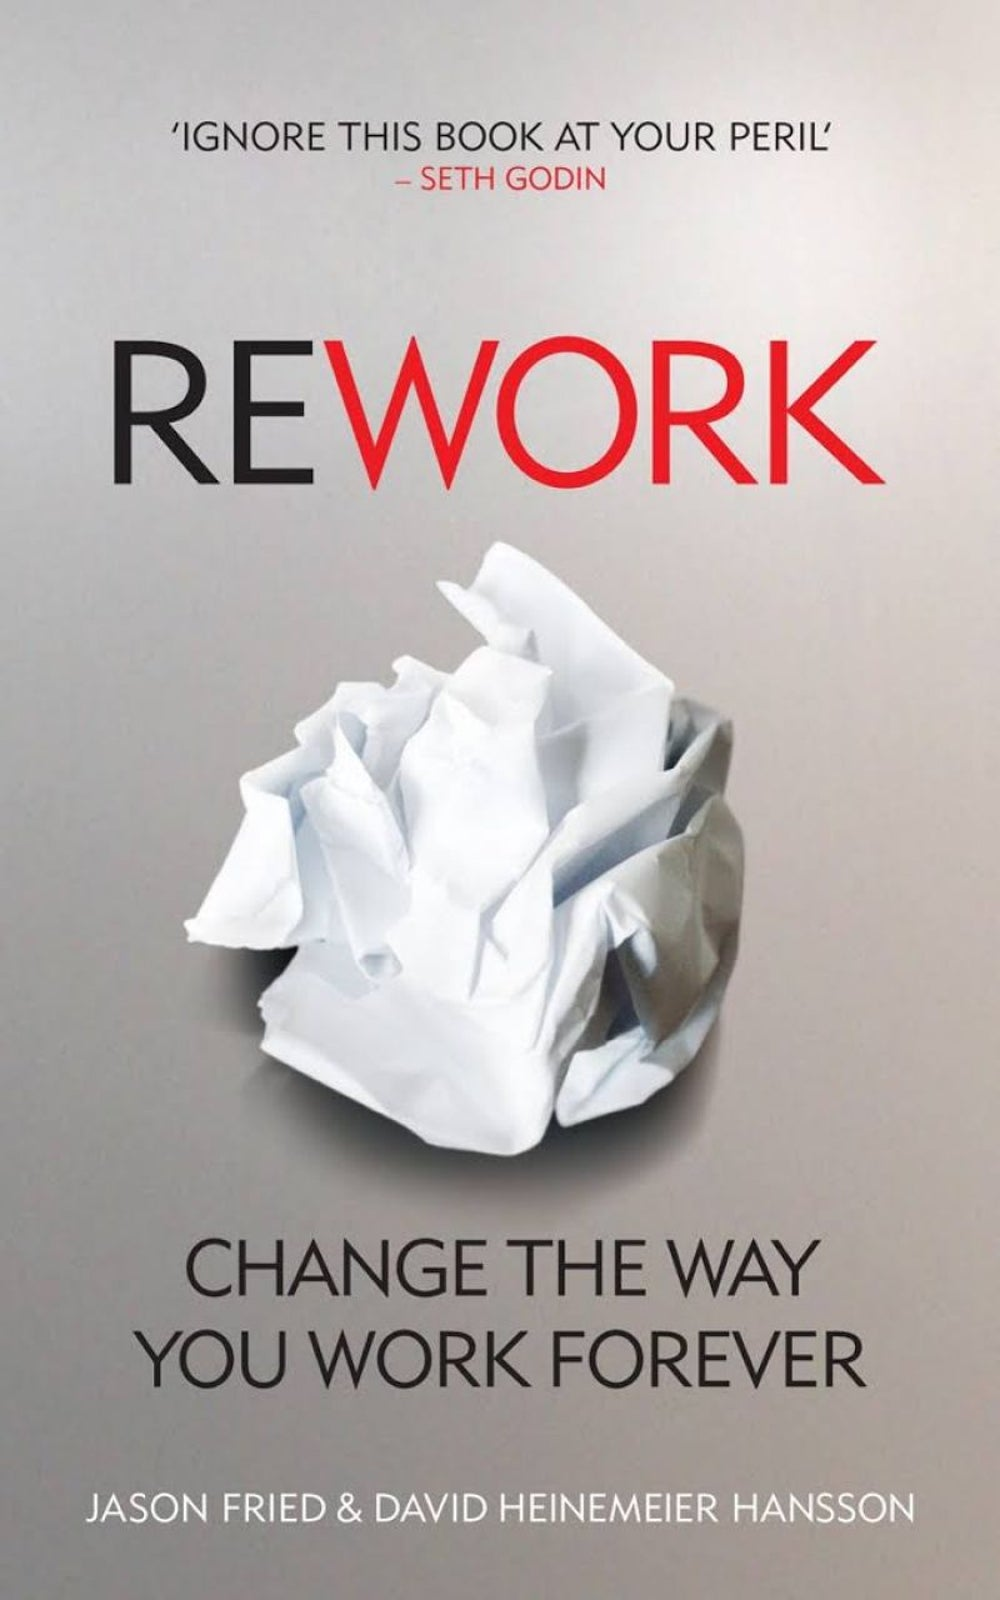 Rework by Jason Fried and David Hansson